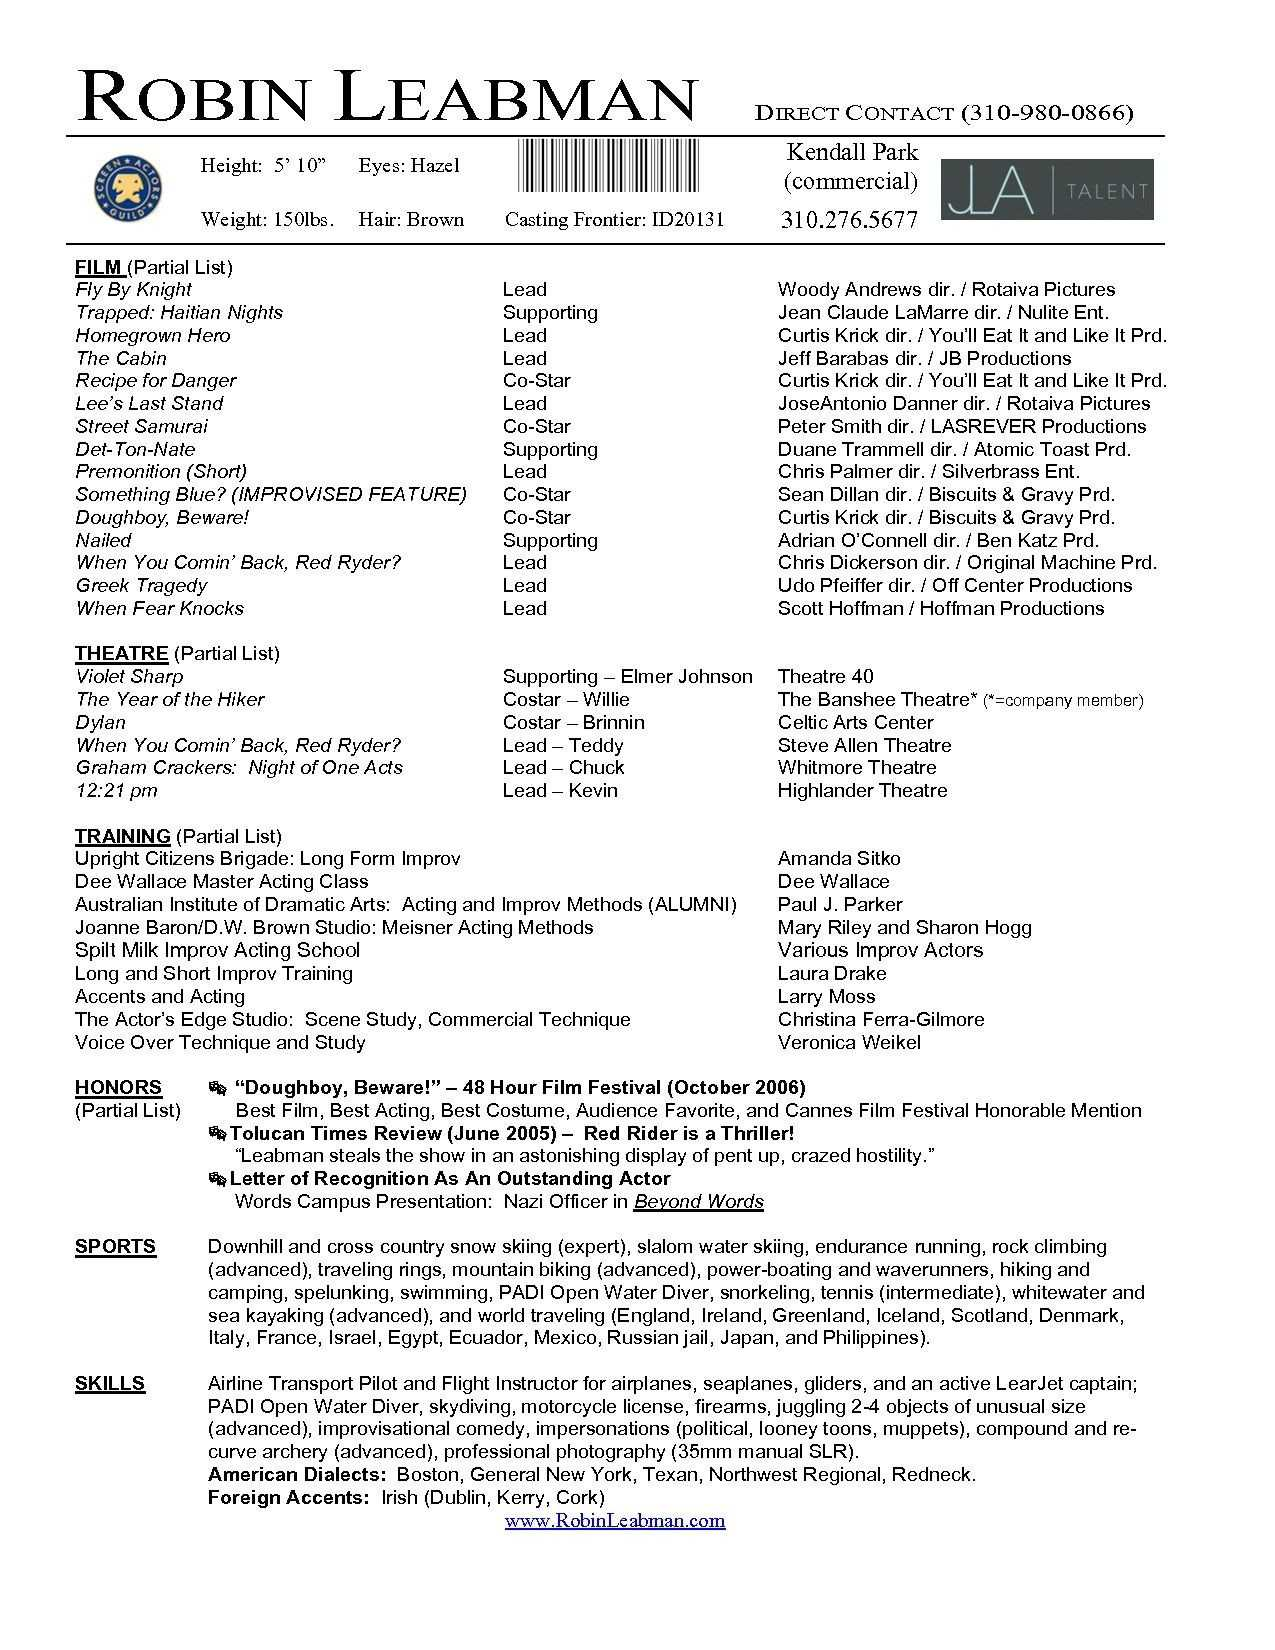 Lovely Acting Resume Template For Microsoft Word - Superkepo regarding Theatrical Resume Template Word